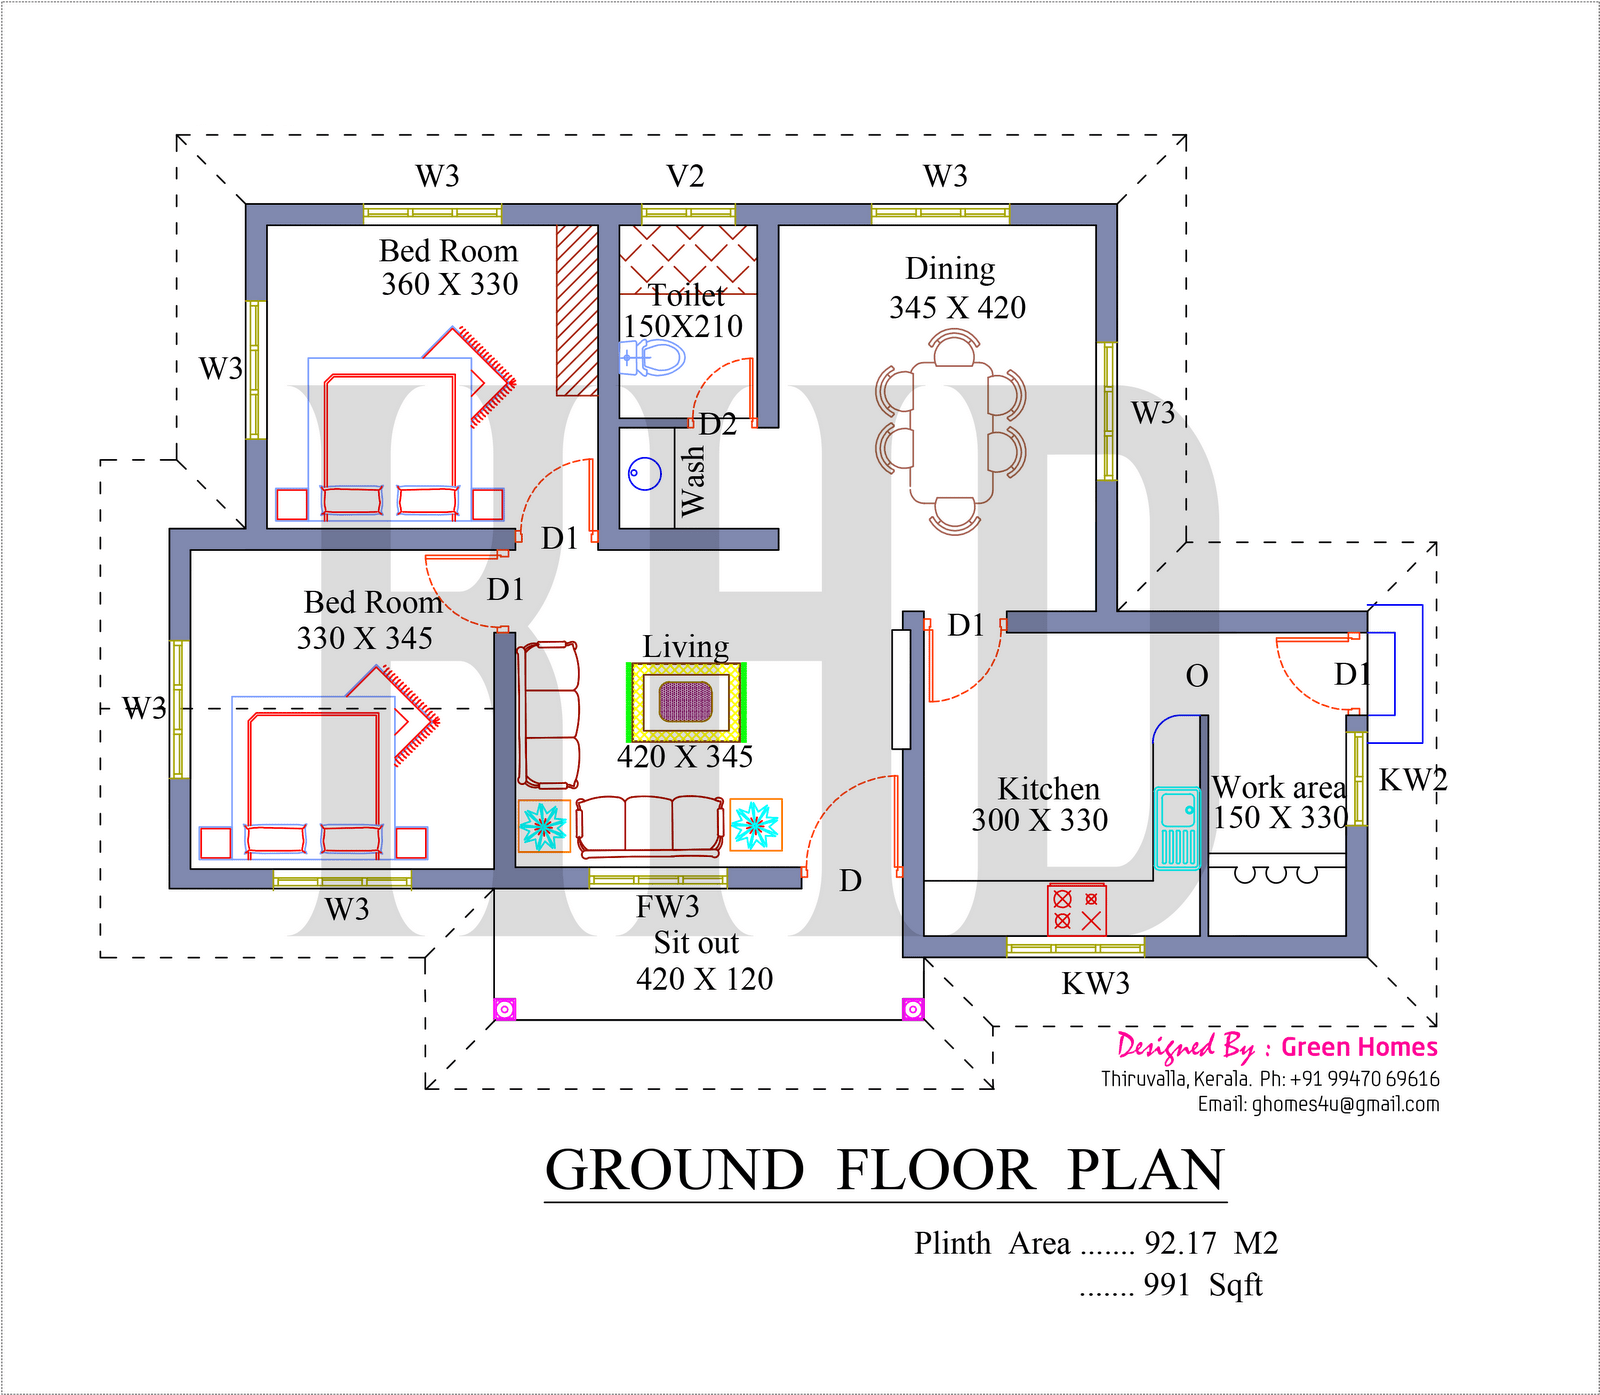 Low cost house in kerala with plan photos 991 sq ft khp for Home floor plans with estimated cost to build